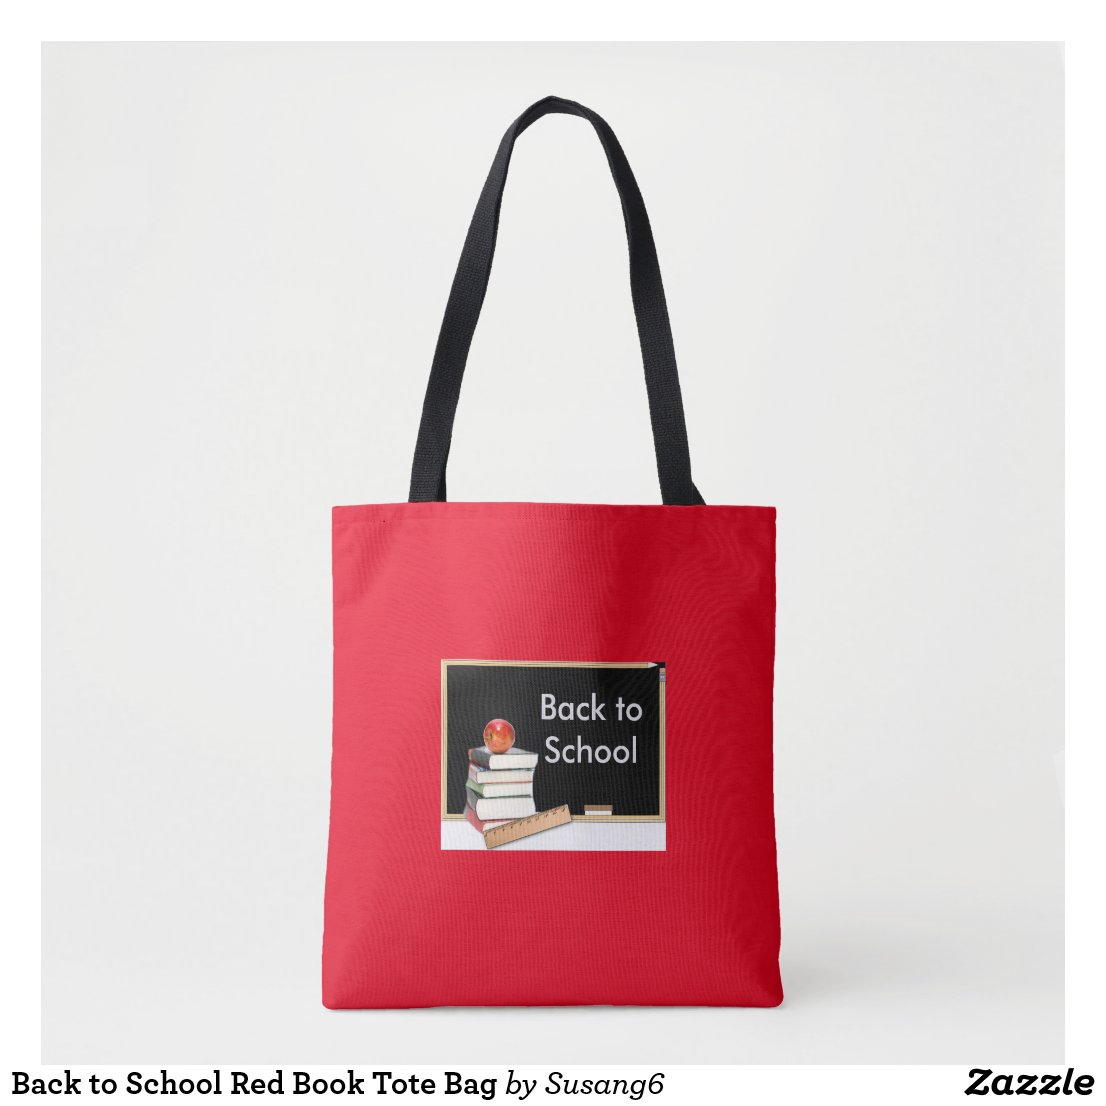 Back to School Red Book Tote Bag